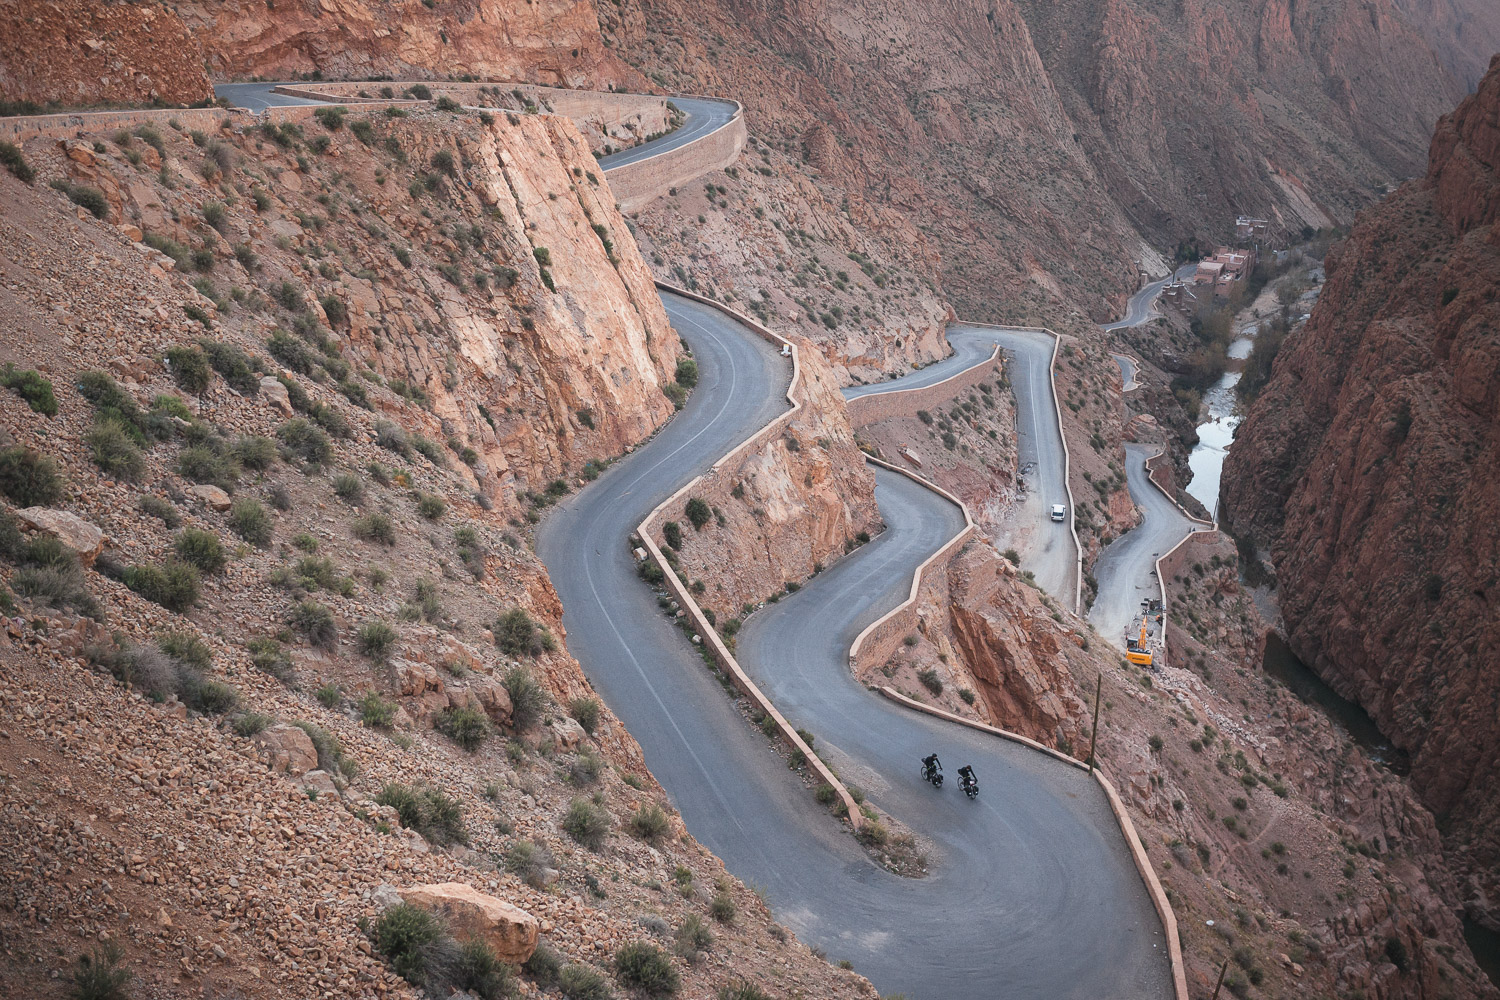 8bar bikes adventures morocco gravel 20151213 0015 bearbeitet 1 - 8bar Adventures - Morocco - High Atlas - Part 2/2